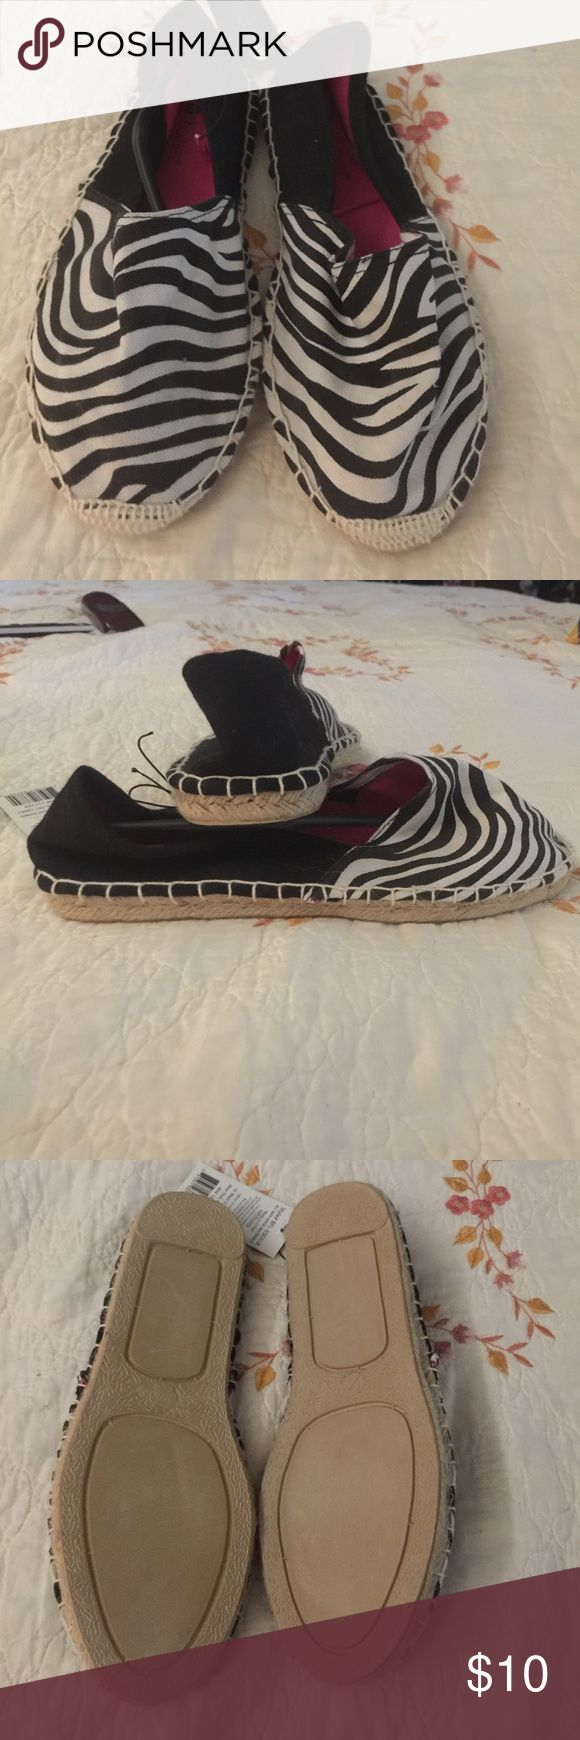 Chatties black and white zebra espadrilles Chatties size M (7/8) black and white zebra print espadrilles.  These are new with tags never worn. Super cute and just in time for summer! chatties Shoes Espadrilles